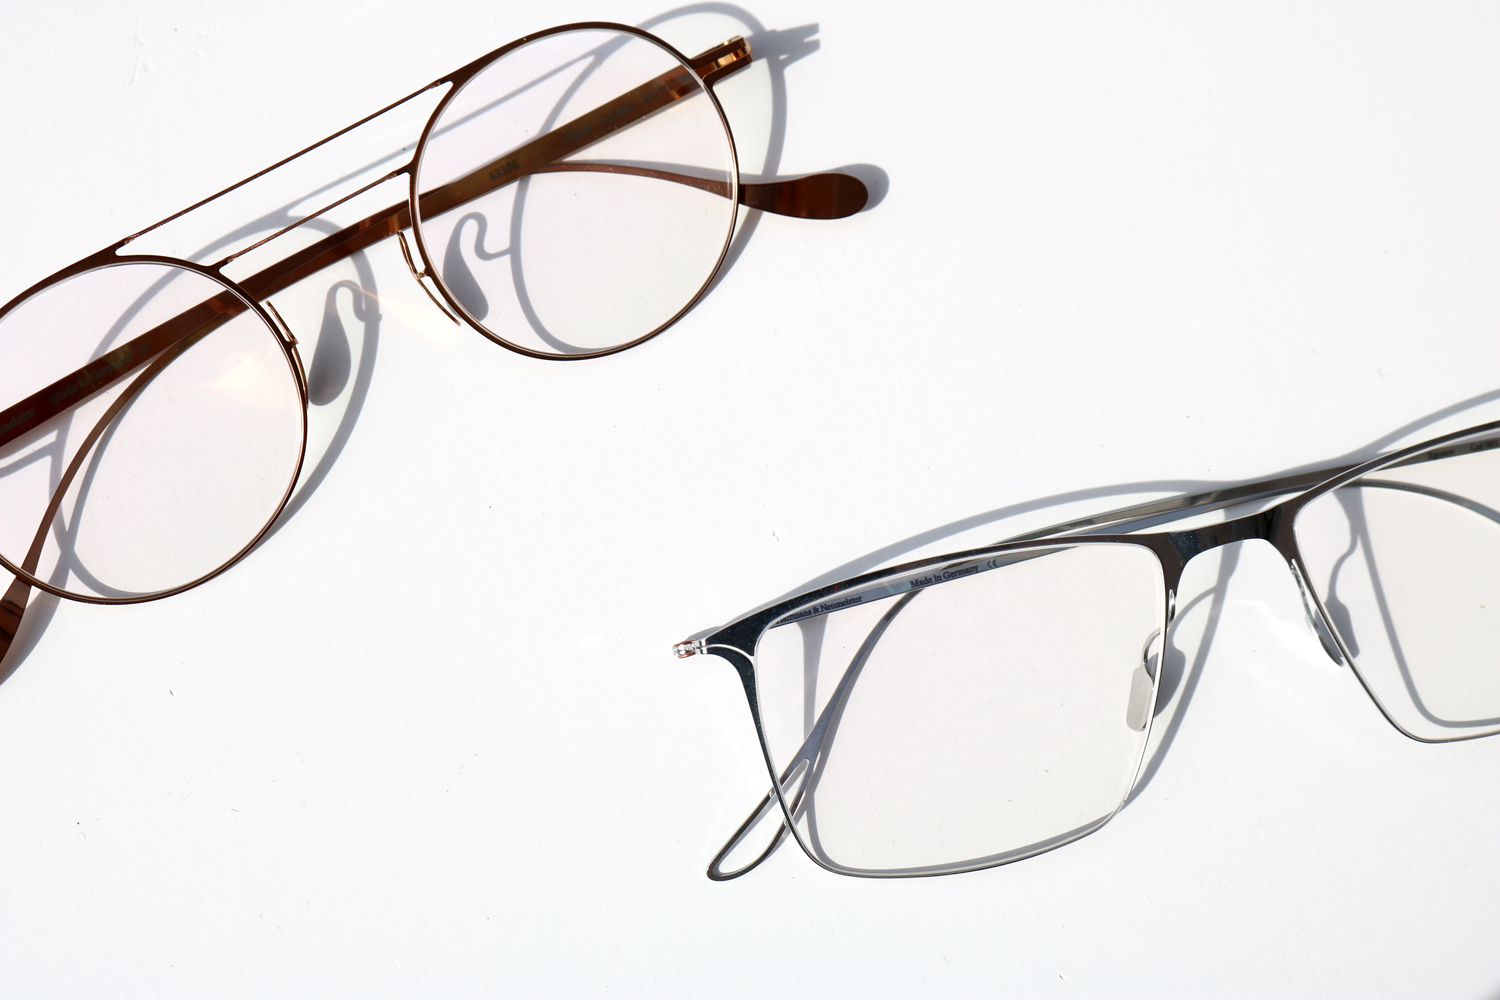 Haffmans & Neumeister|New Arrival , Re-Arrival